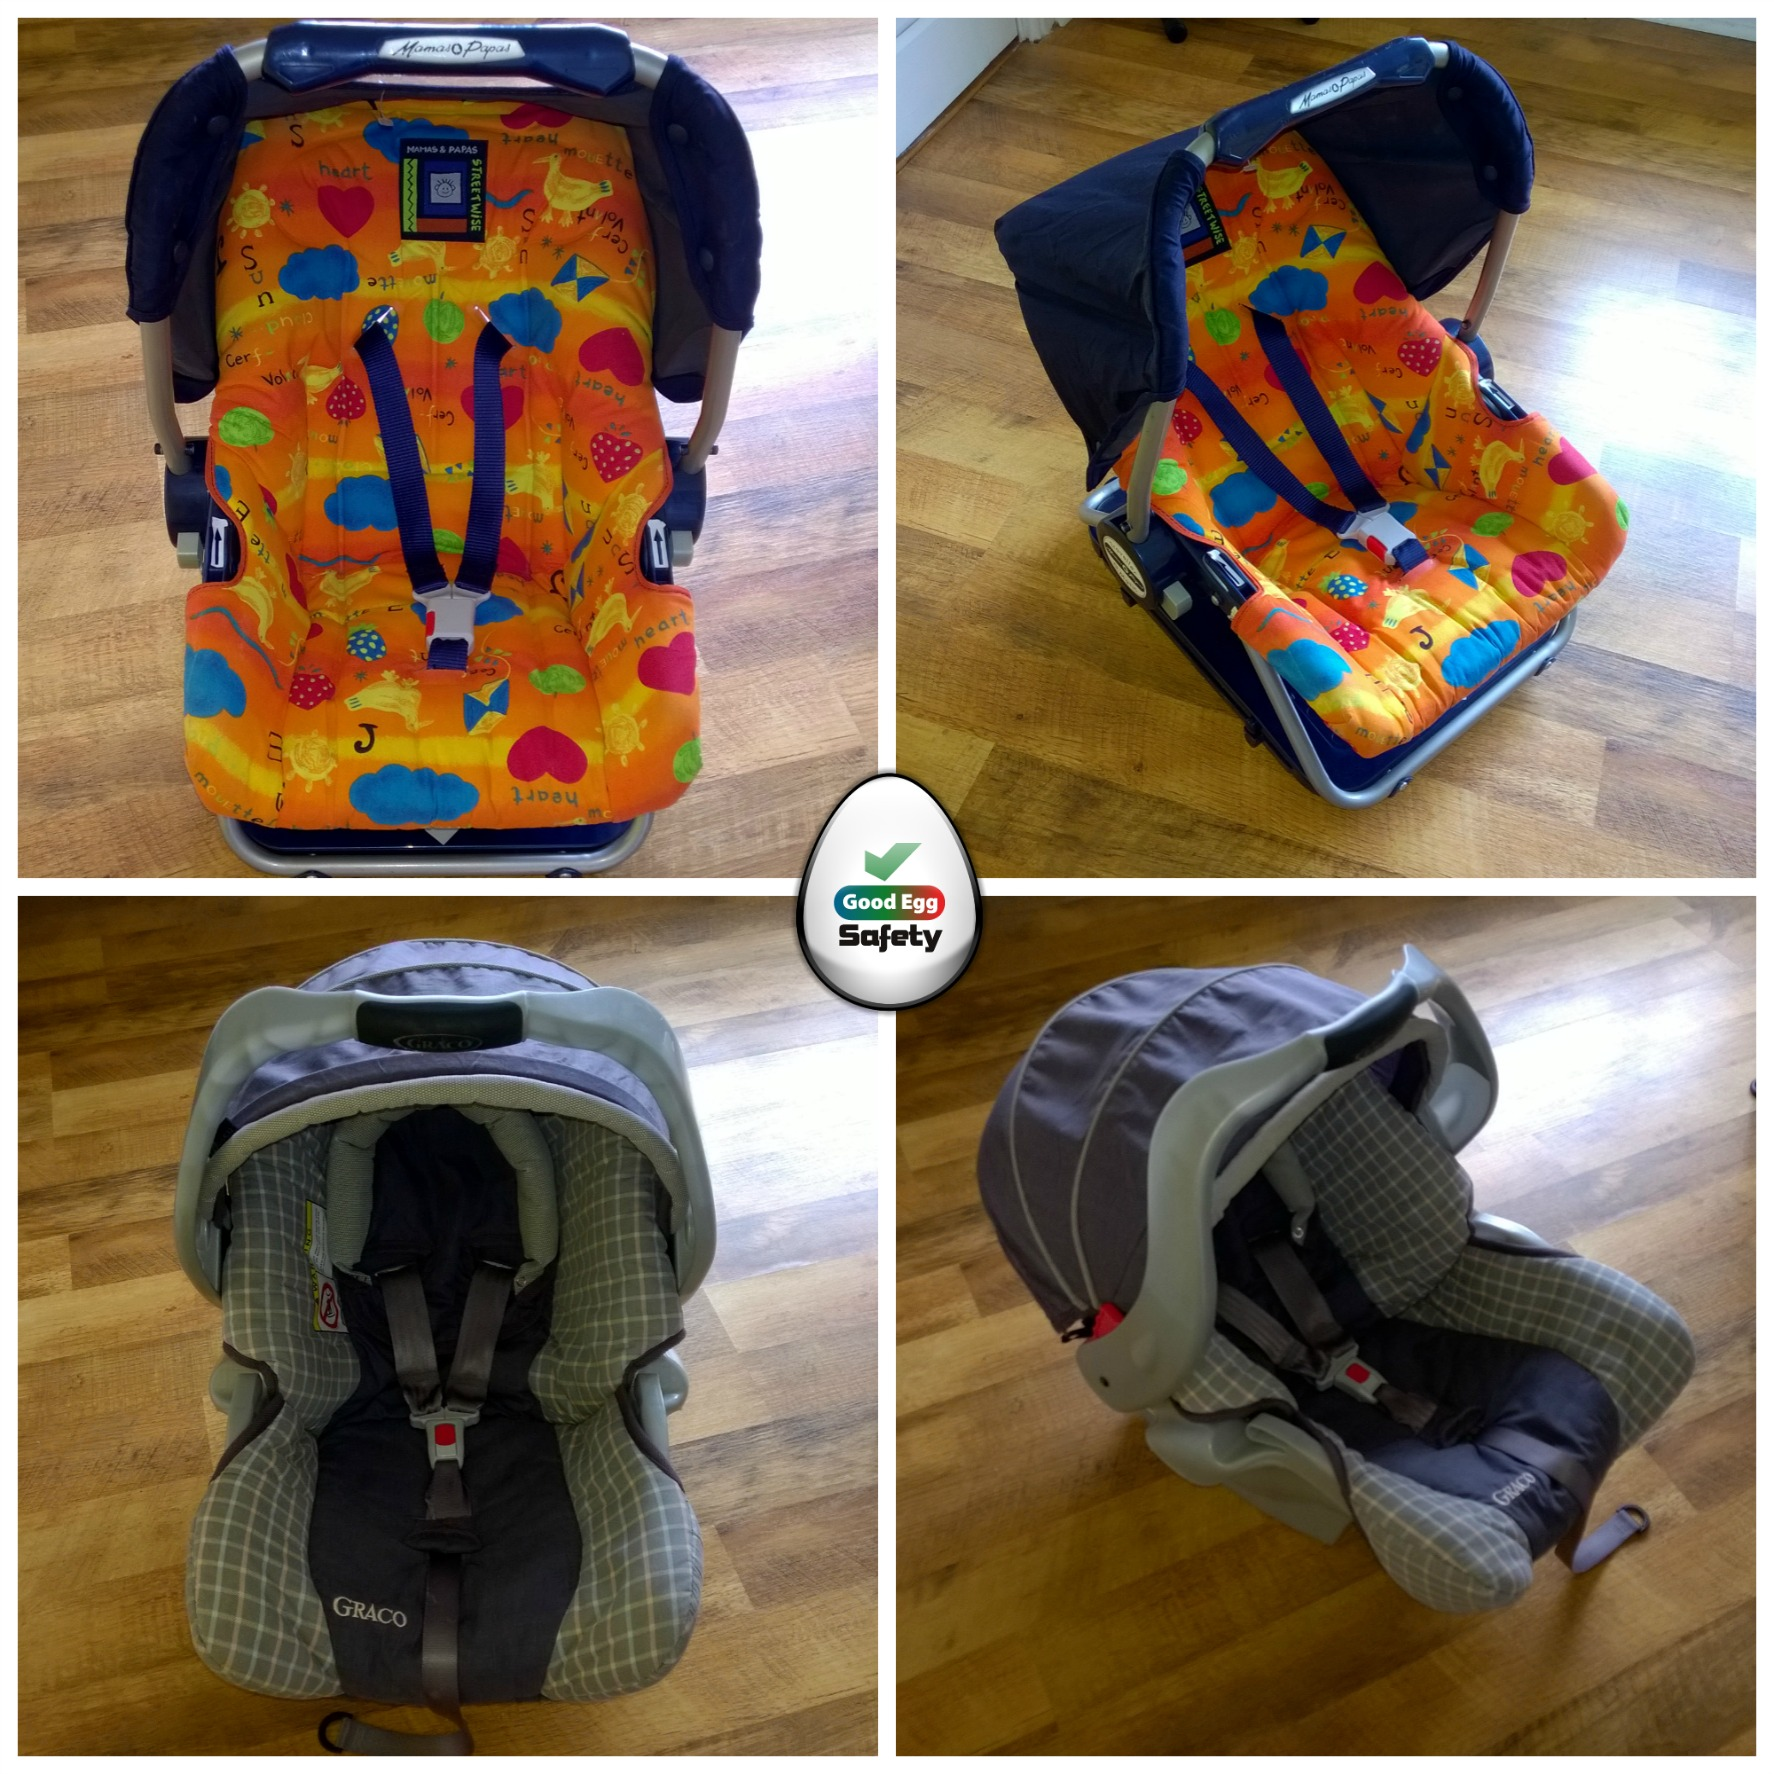 Baby Car Seat Uk Do Child Car Seats Expire Good Egg Car Safety